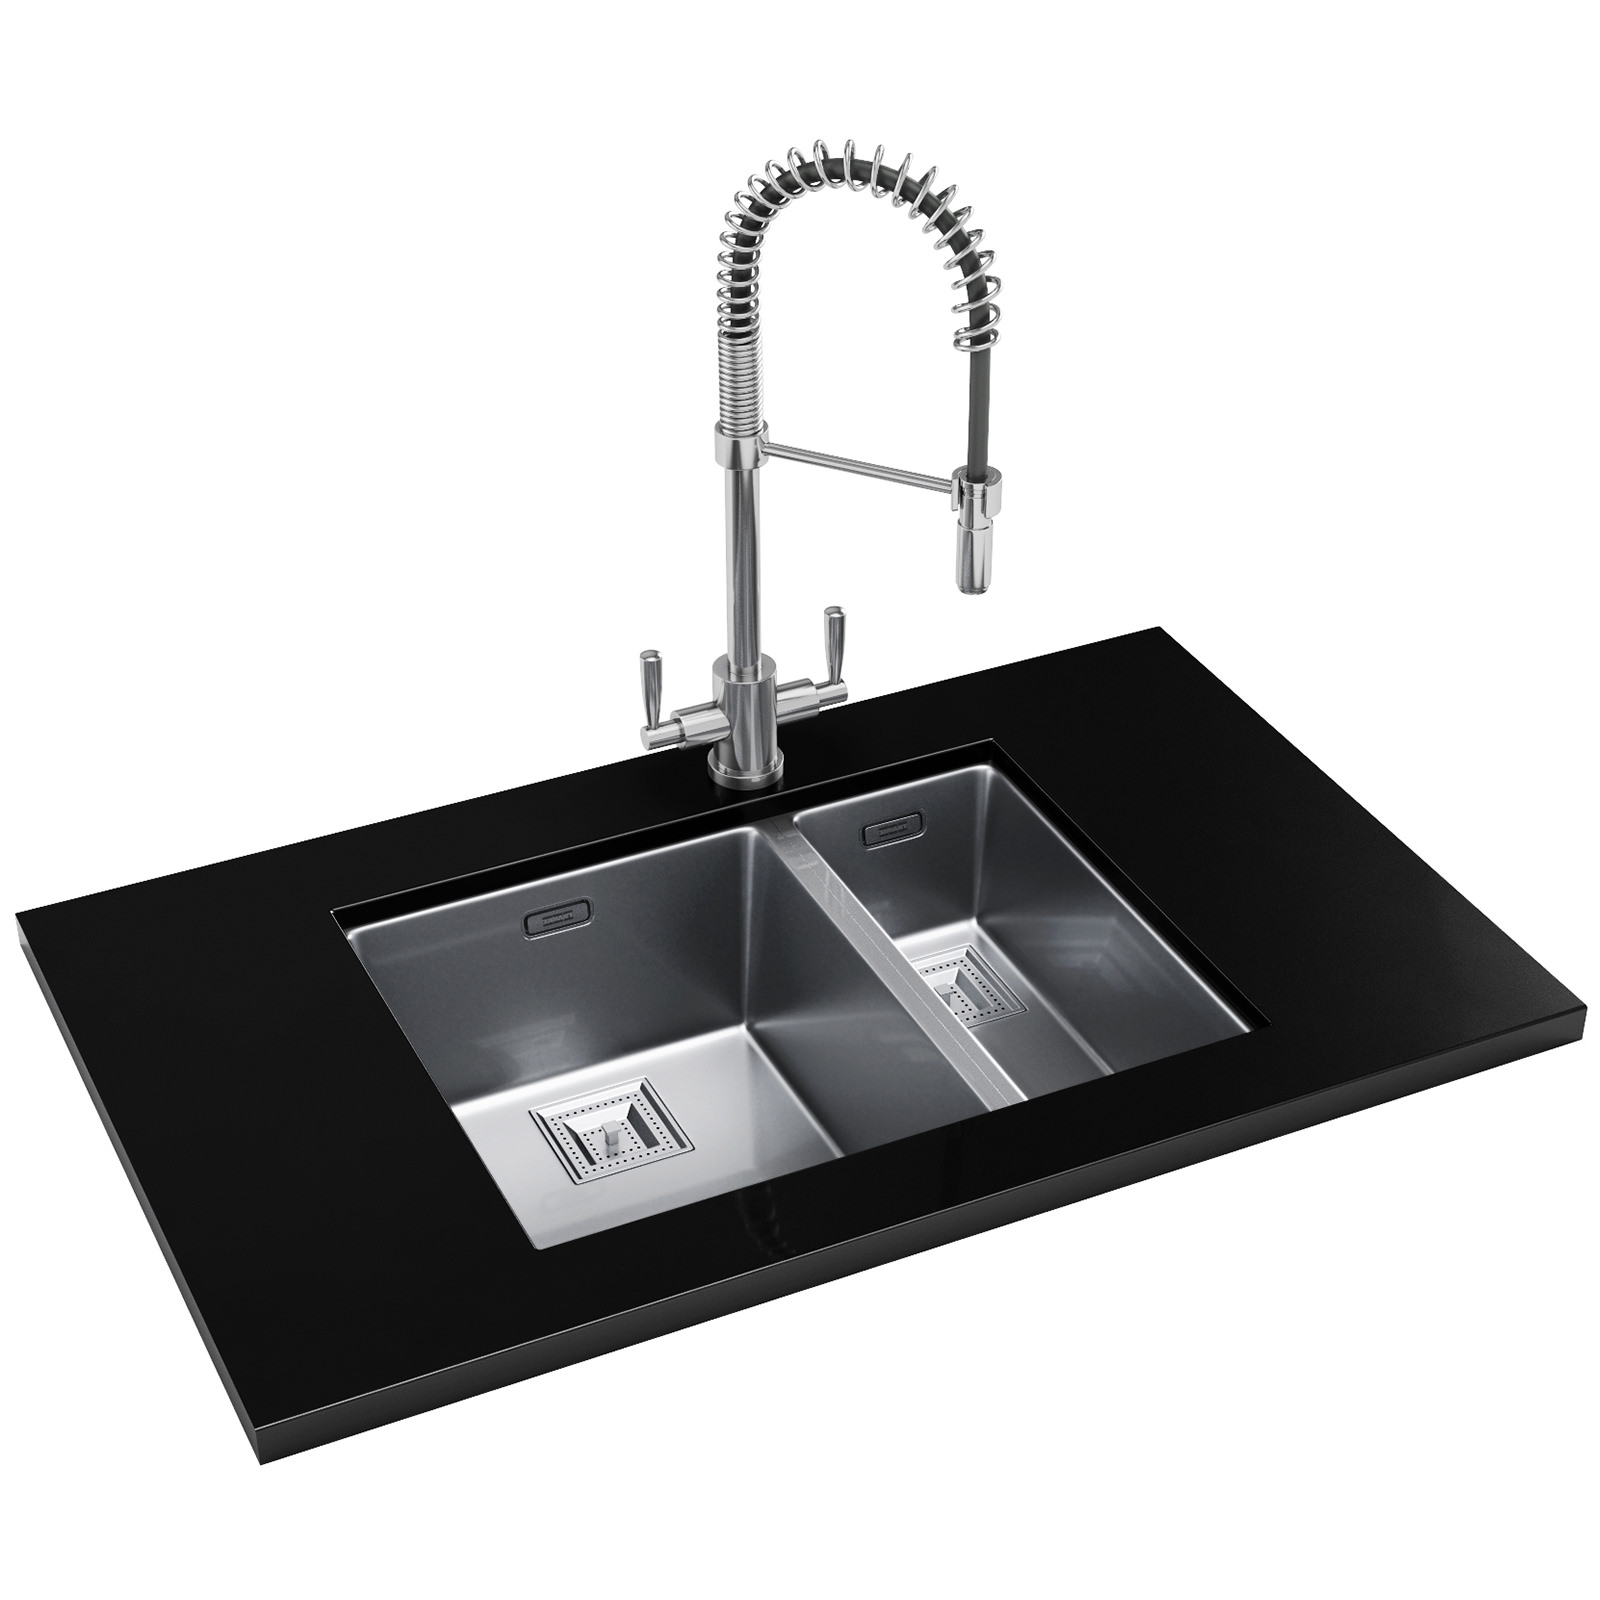 Franke Sinks And Taps : Franke Centinox DP CMX 160 34-17 Stainless Steel Sink And Tap ...